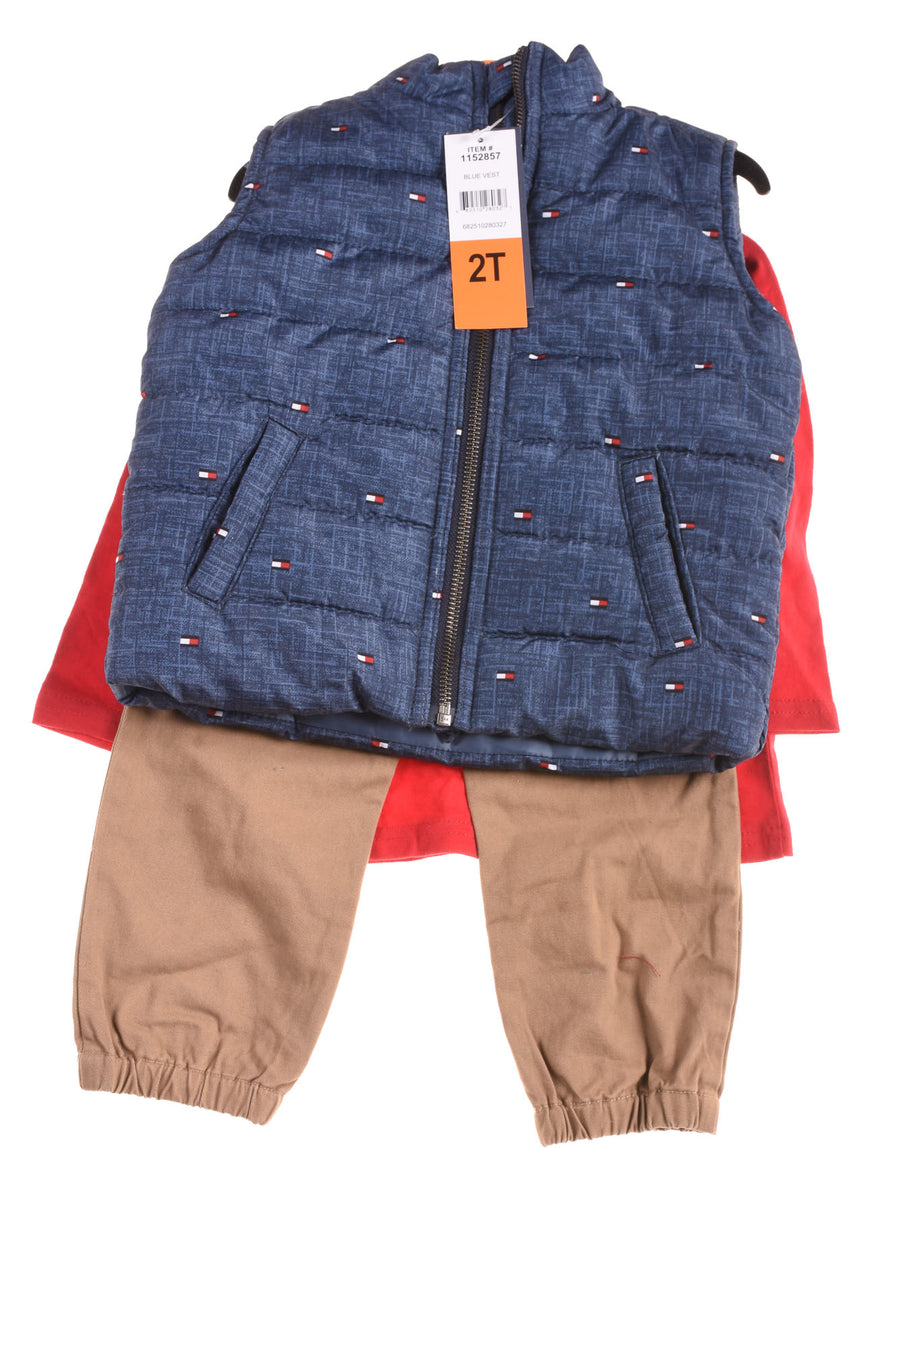 NEW Tommy Hilfiger Toddler Boy's Outfit 2T Blue, Red, & Tan